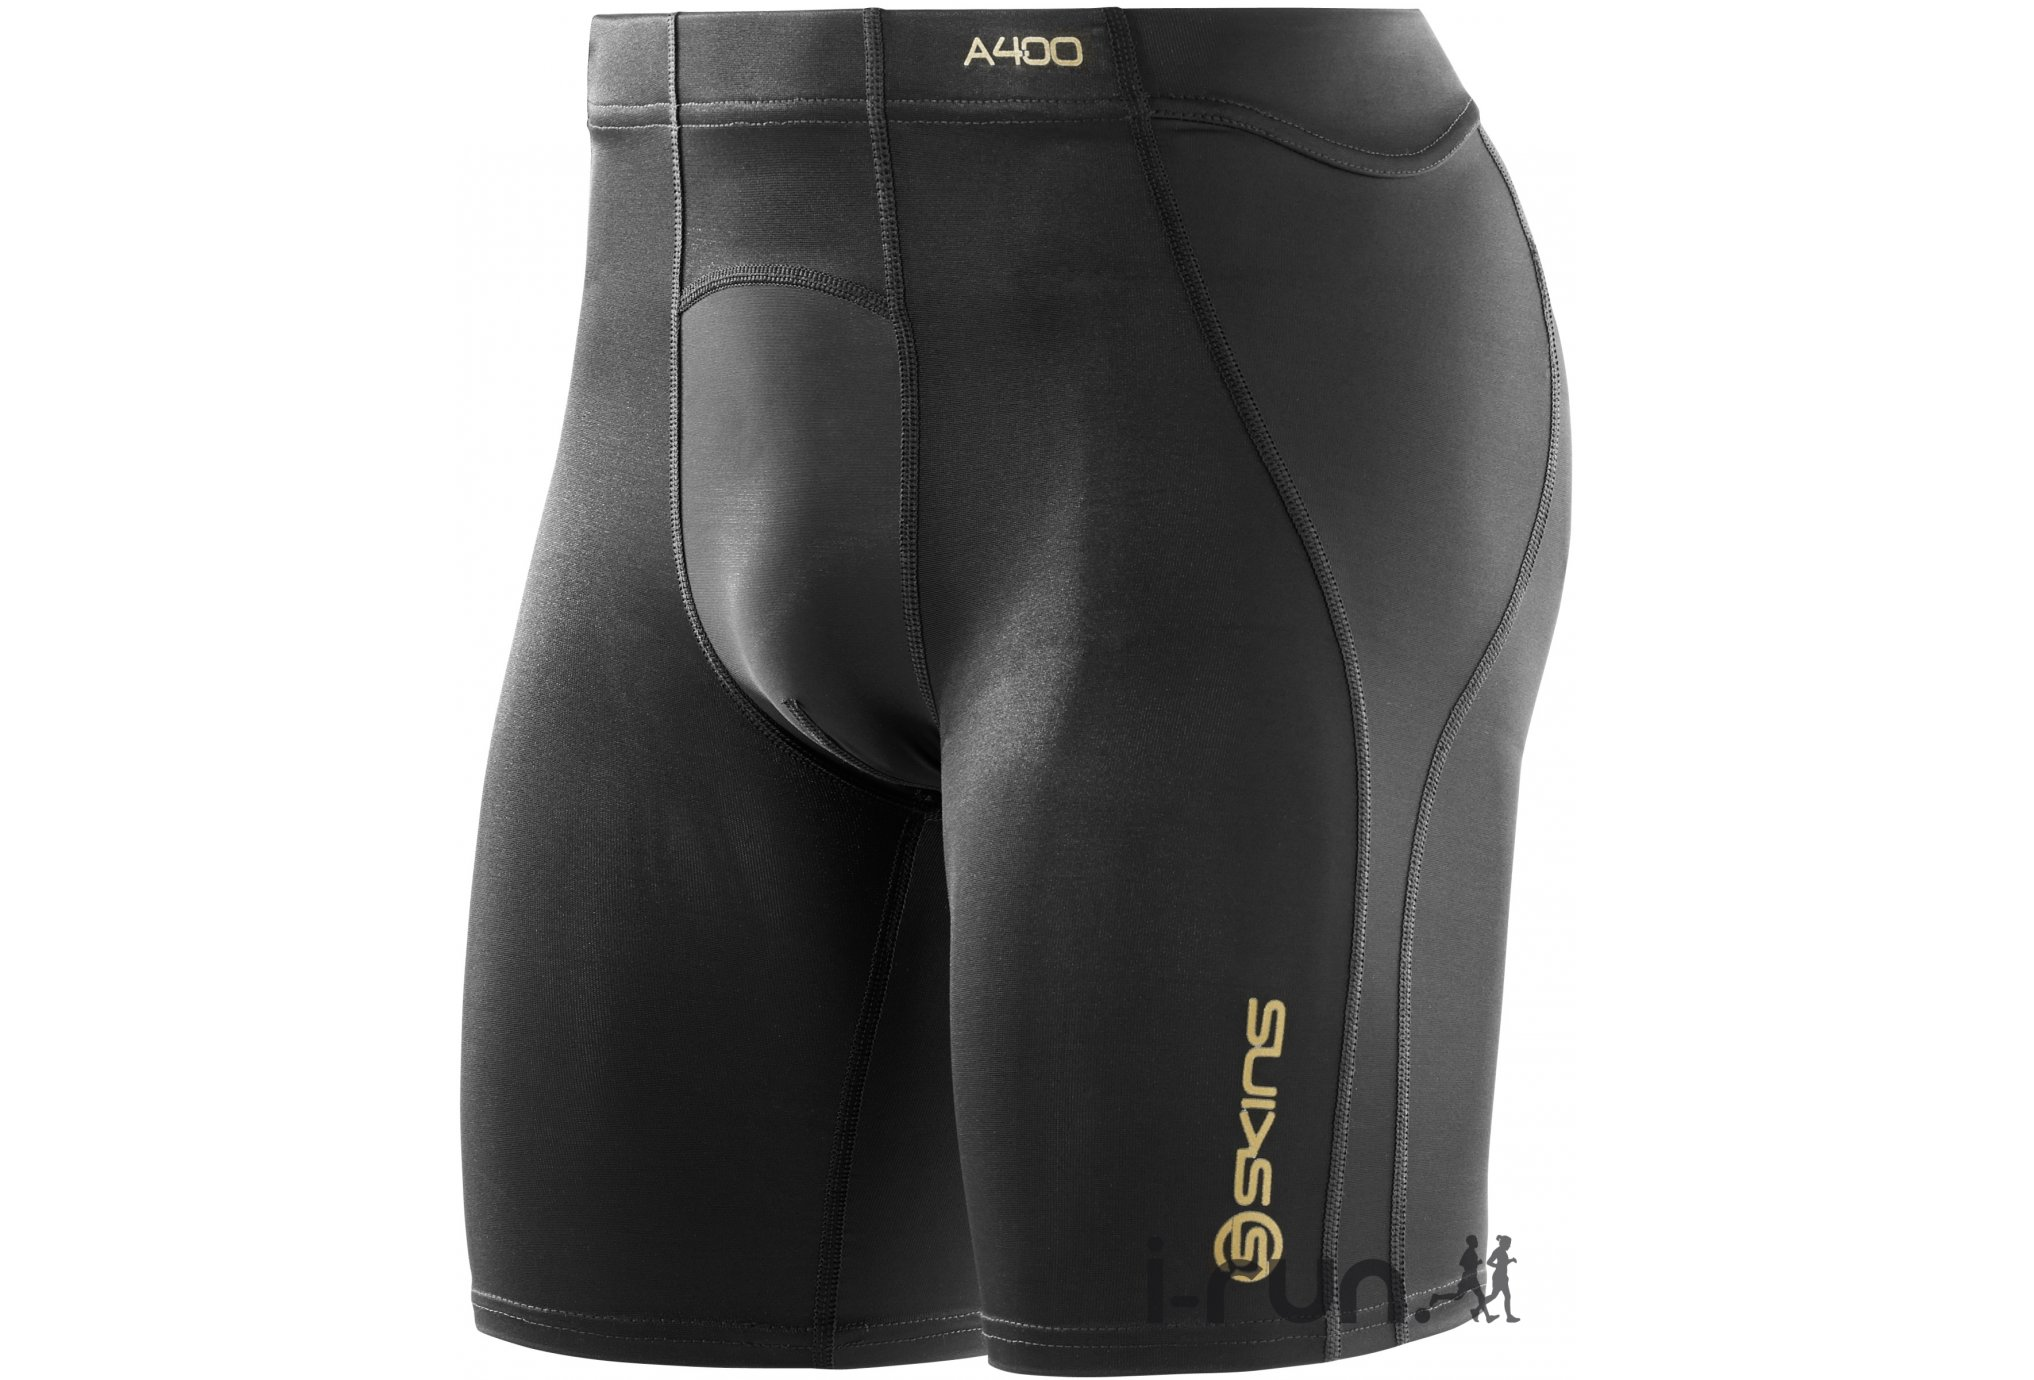 Skins A400 Power Short M vêtement running homme